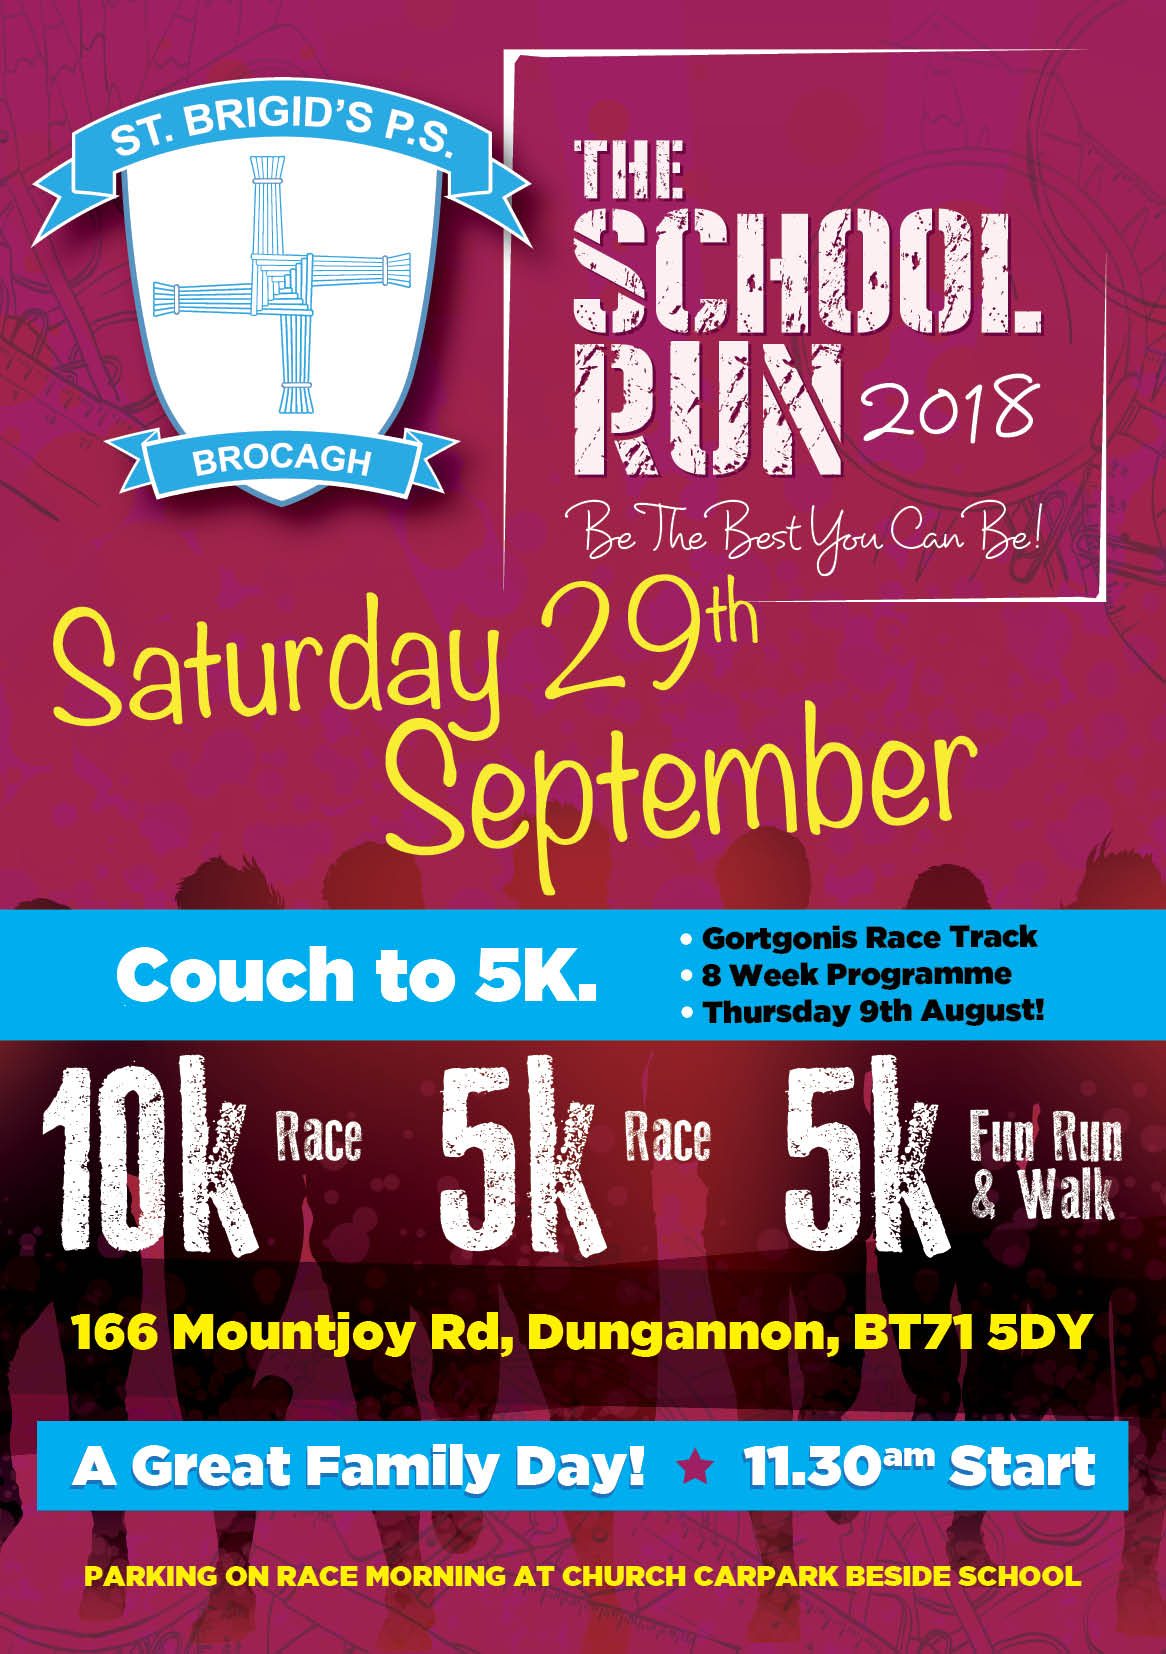 The Brocagh School Run 5k and 10k